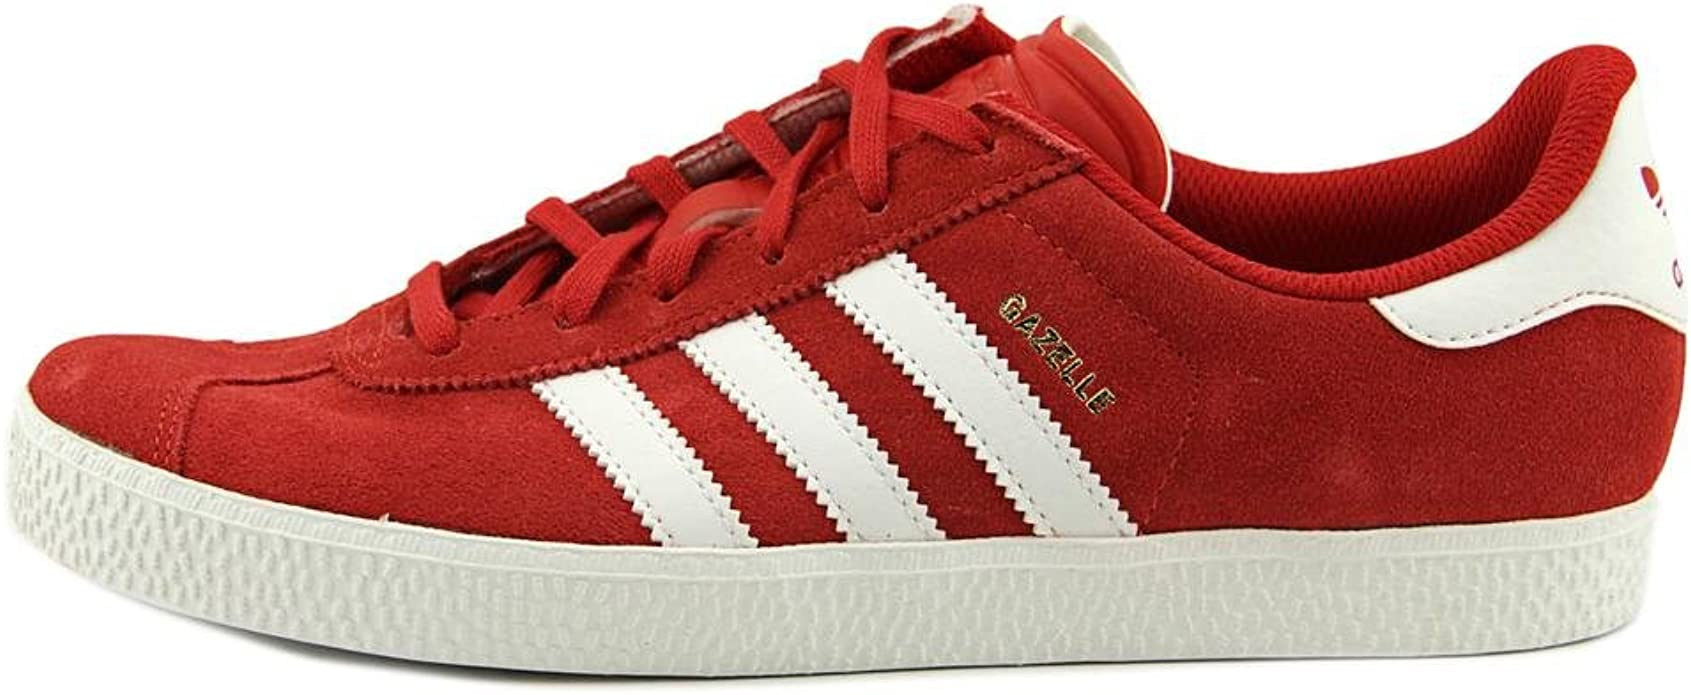 adidas Kids Boys Gazelle 2 Sneakers Shoes - Red